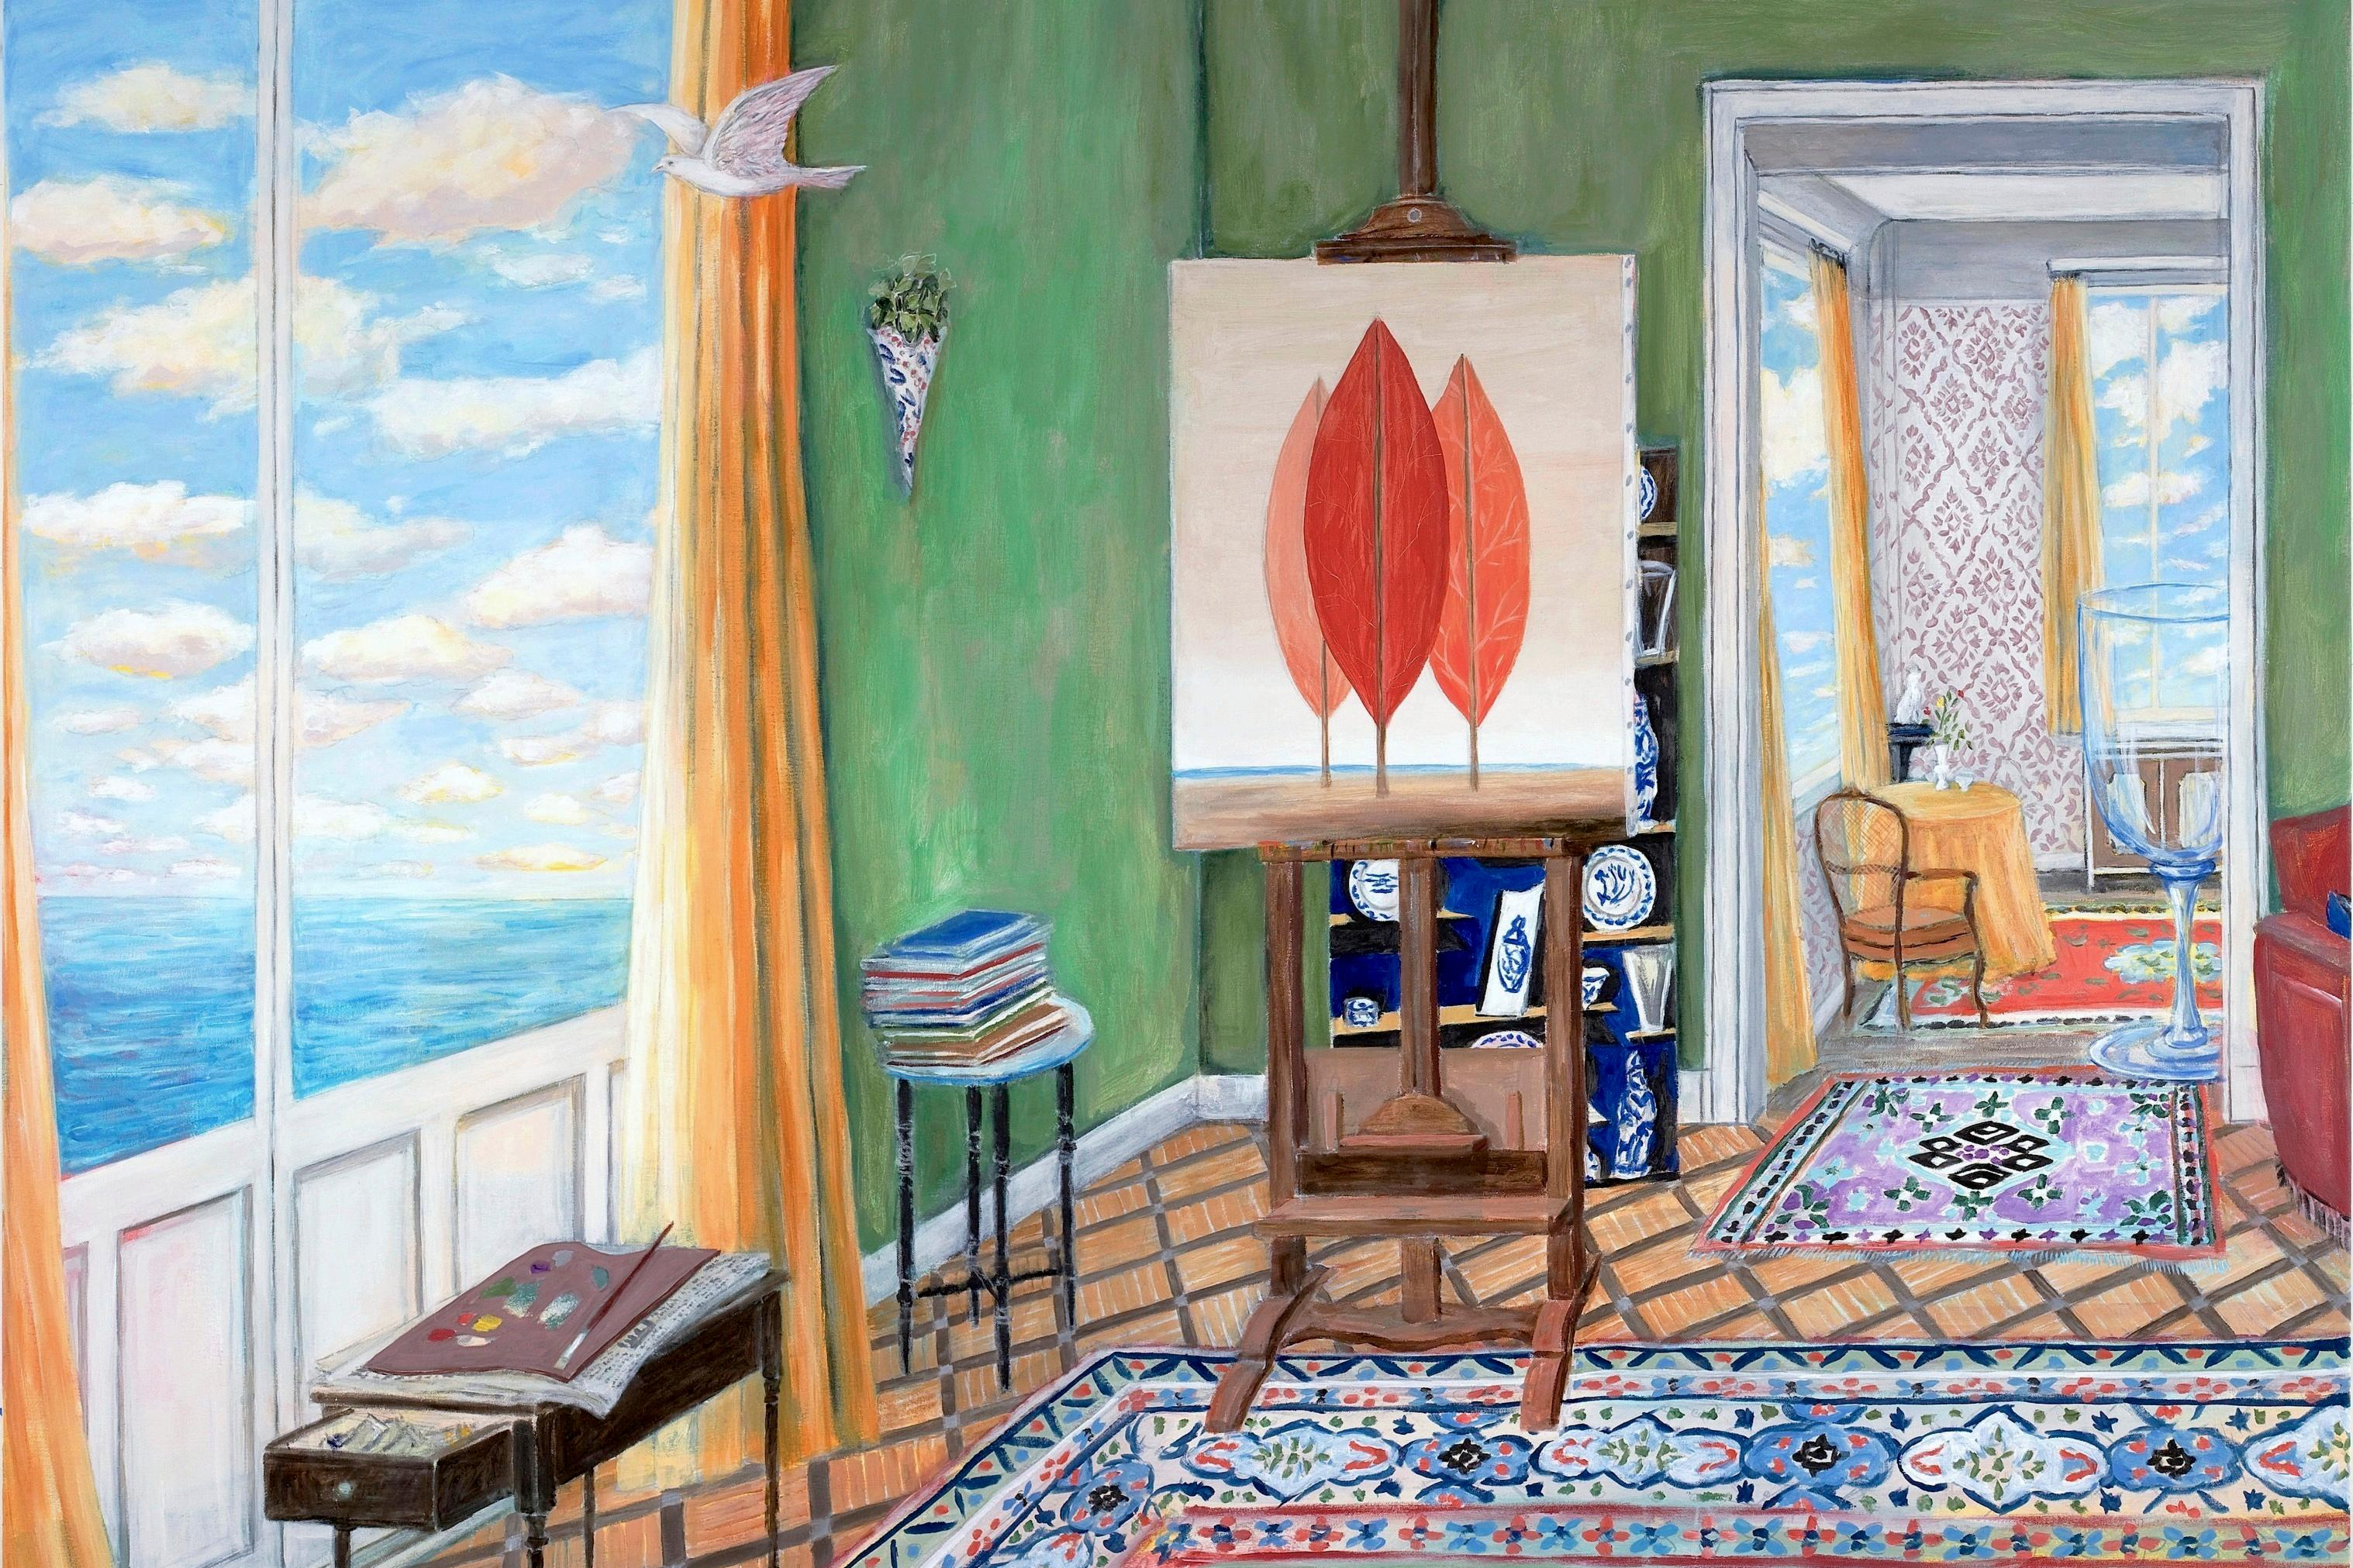 How To Set Up A Painting Studio At Home Artsy